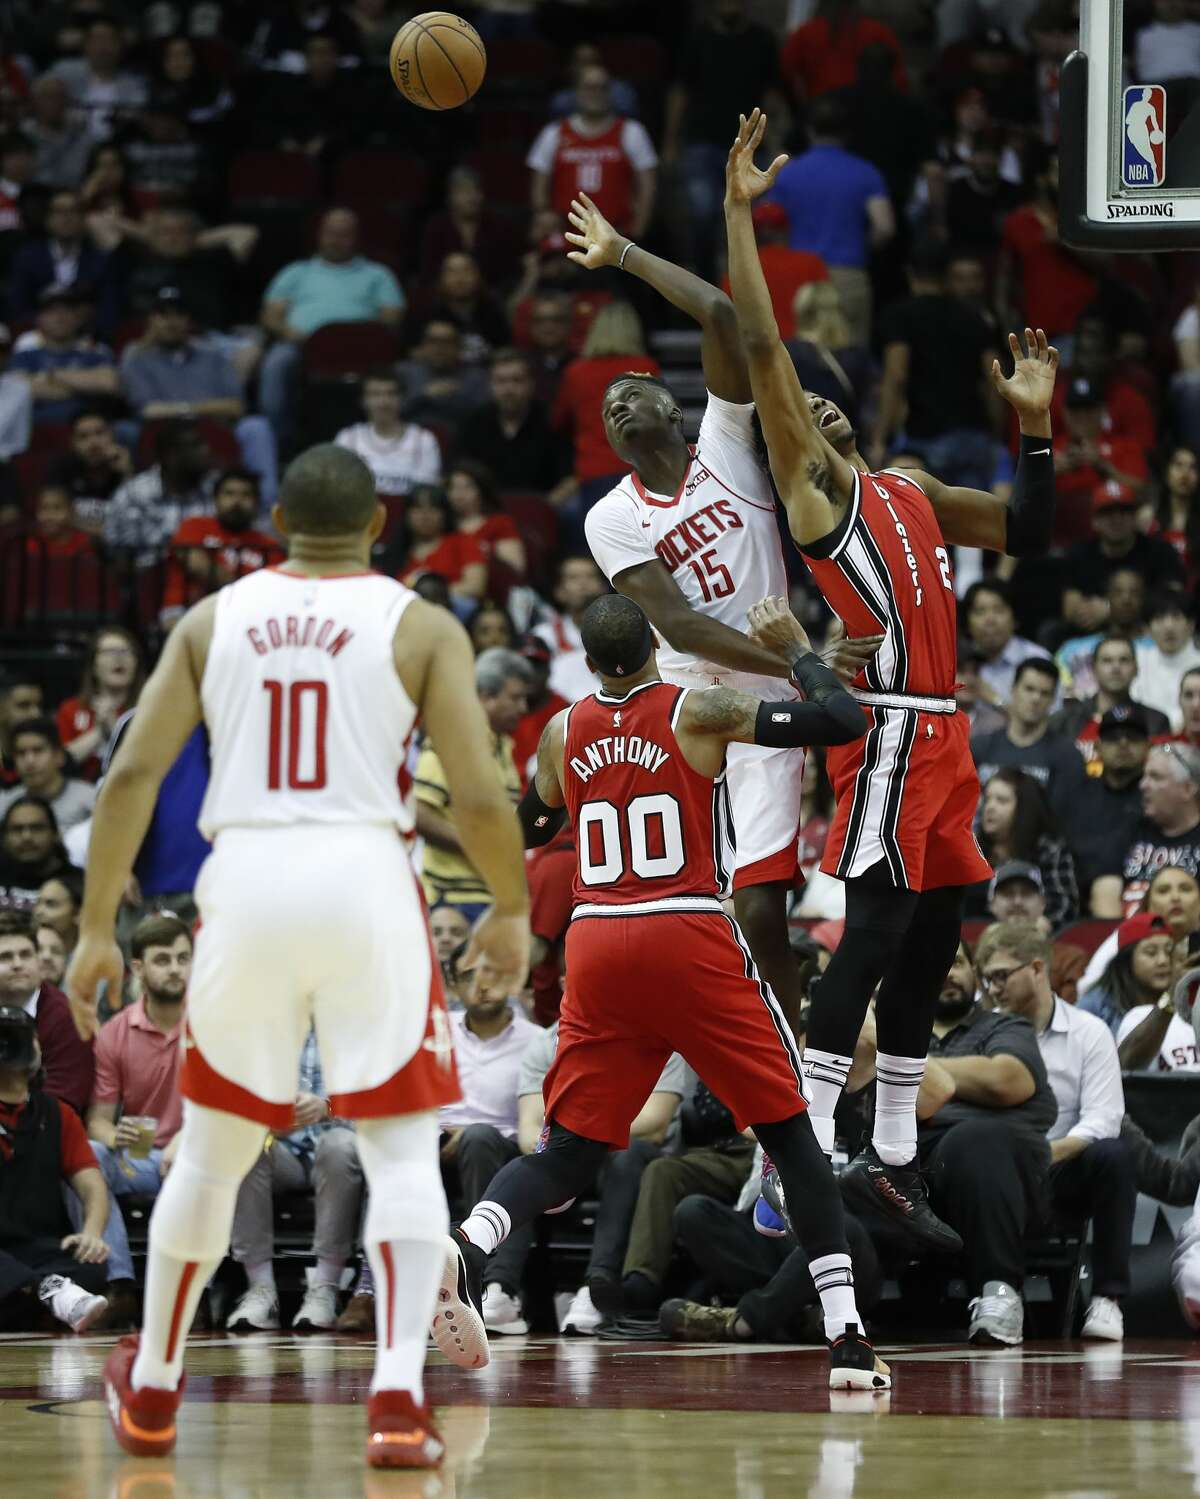 Houston Rockets center Clint Capela (15) reaches for a rebound against Portland Trail Blazers guard Gary Trent Jr. (2) and forward Carmelo Anthony (00) in the second half of an NBA basketball game at Toyota Center, in Houston, Wednesday, Jan. 15, 2020.